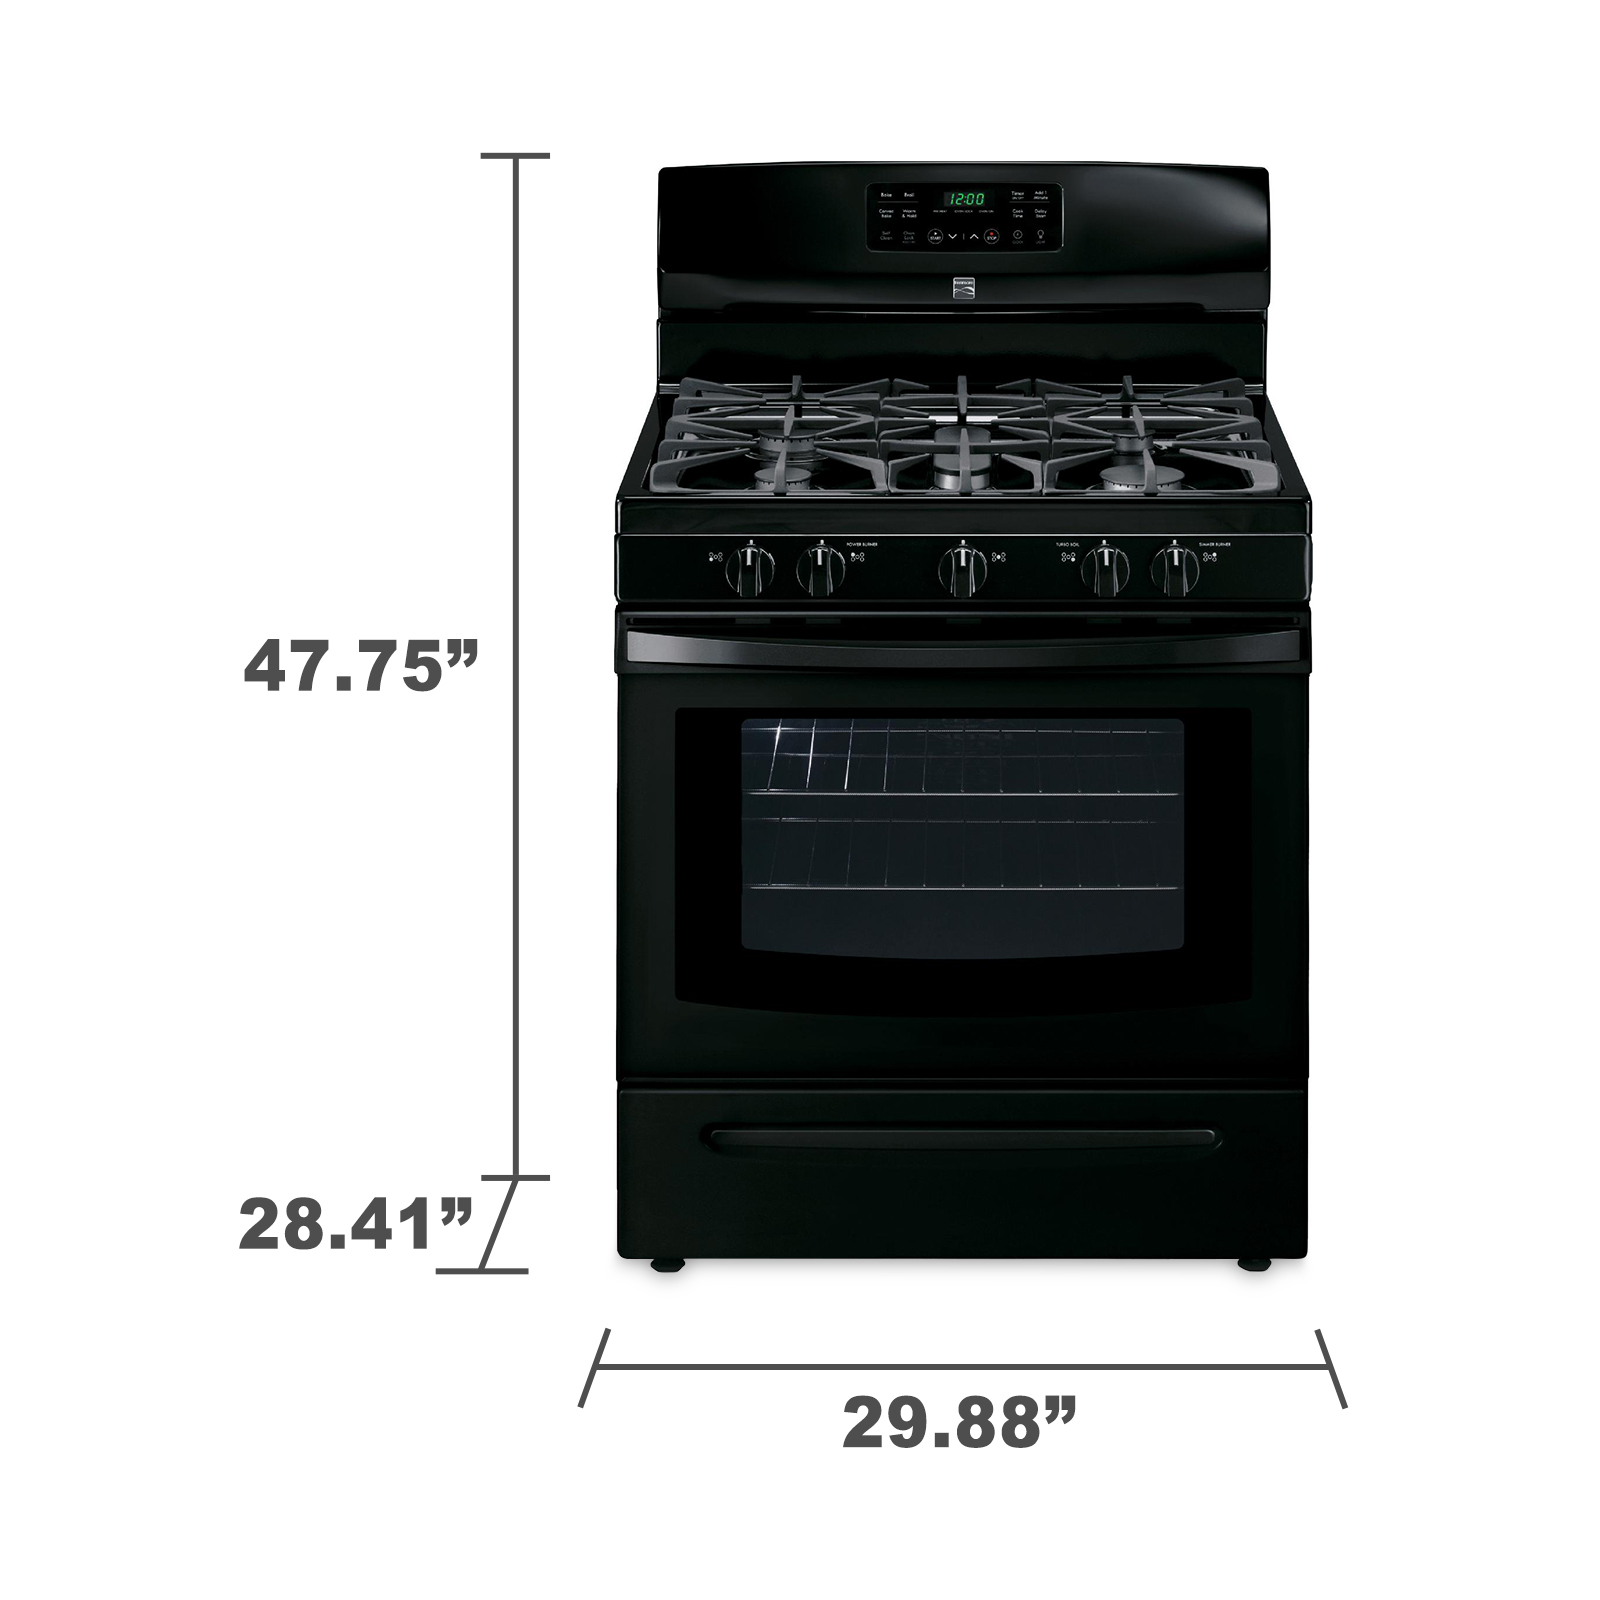 Kenmore 74239 5.0 cu. ft. Freestanding Gas Range w/ Convection - Black